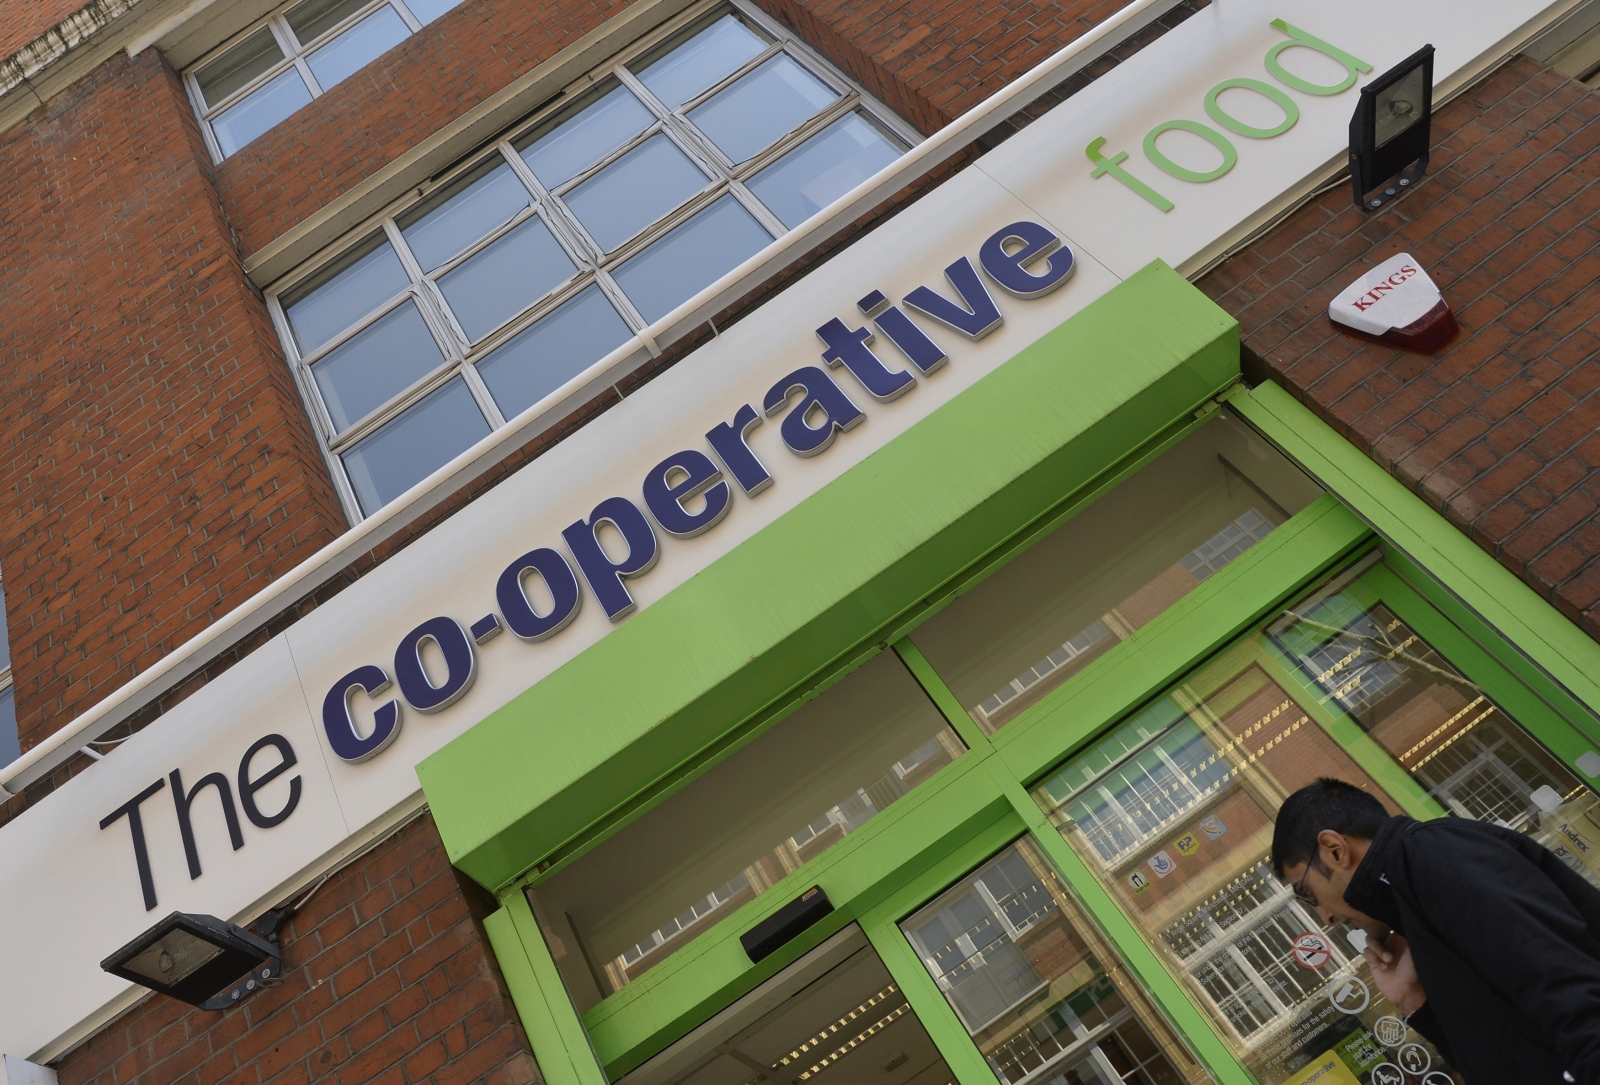 Co-op Group agrees to sell 298 of its smaller food stores to McColl's for £117m